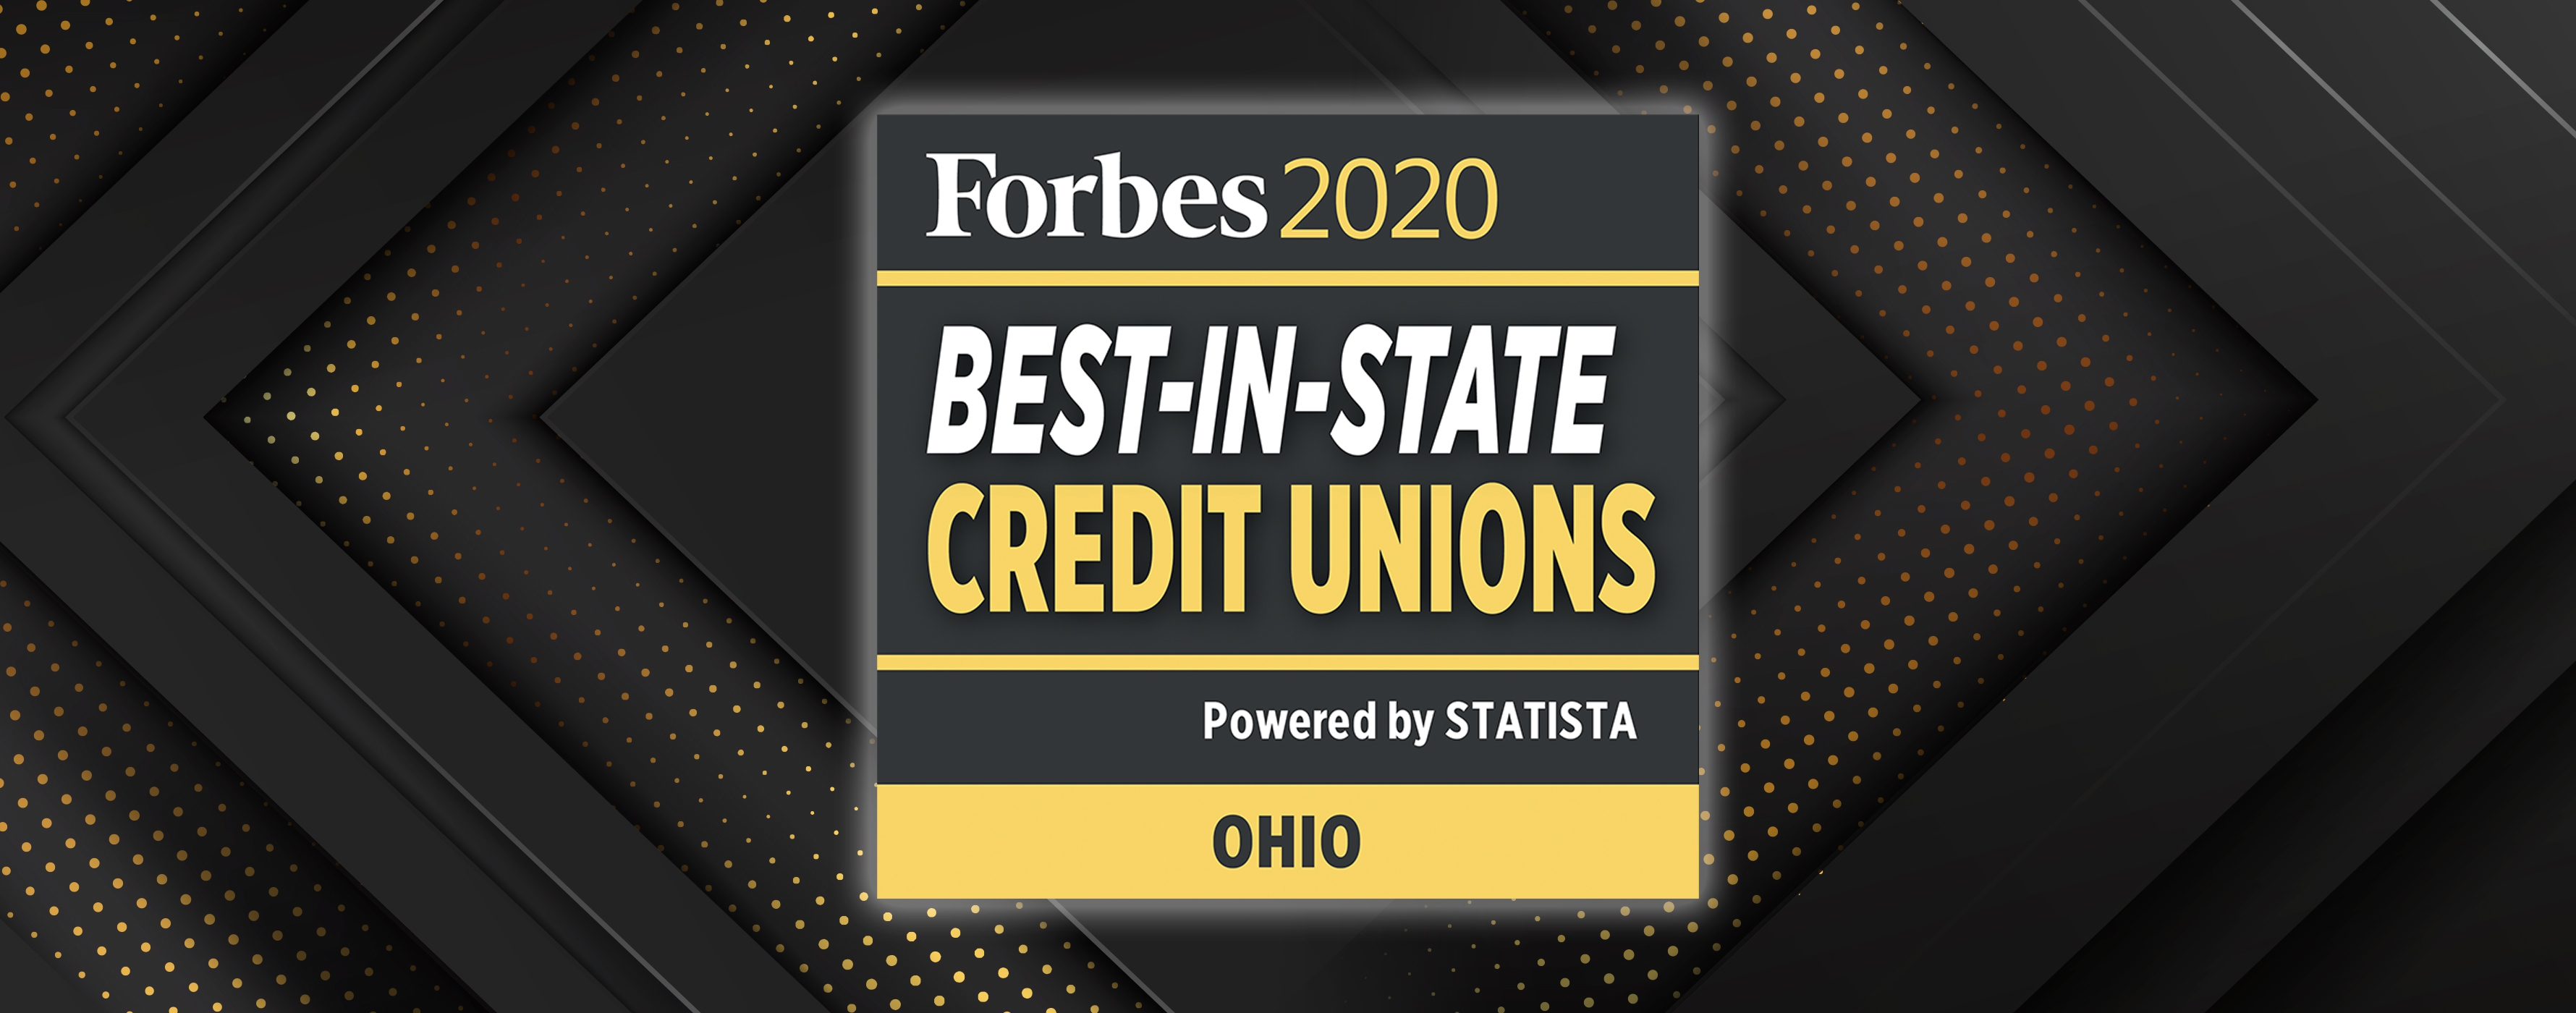 Forbes Names CSE Federal Credit Union Best Credit Union in Ohio